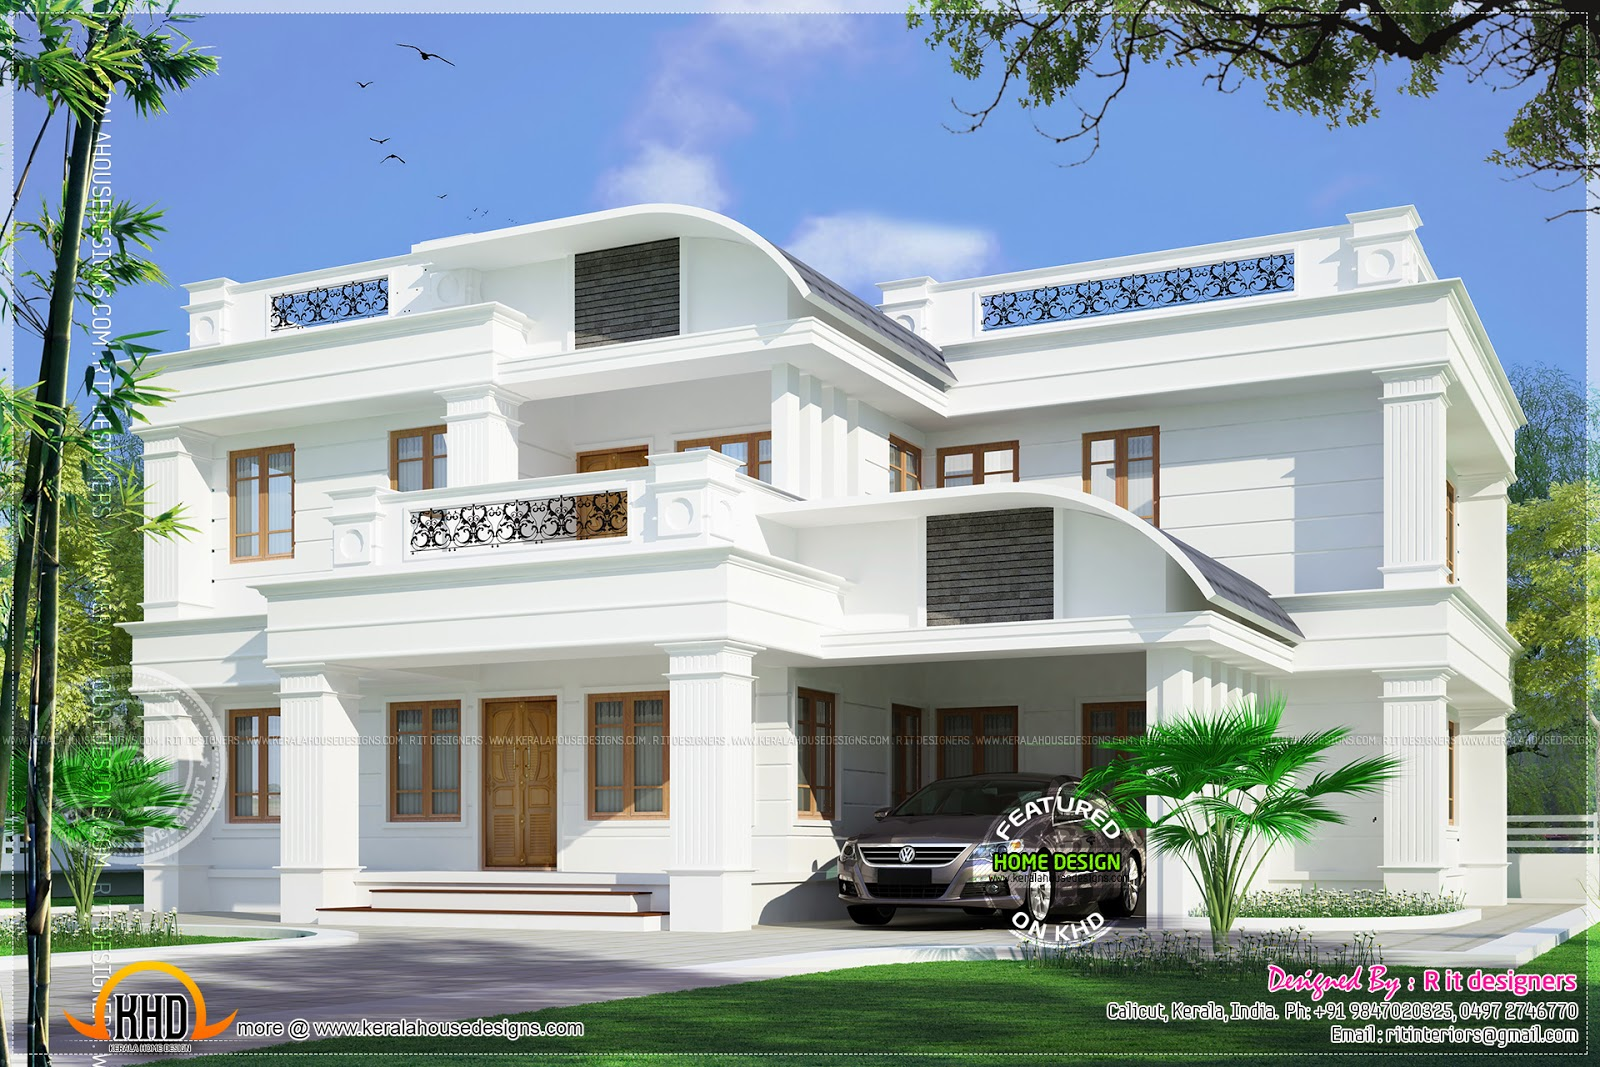 Residence at kannur kerala kerala home design and floor for Big house images in india